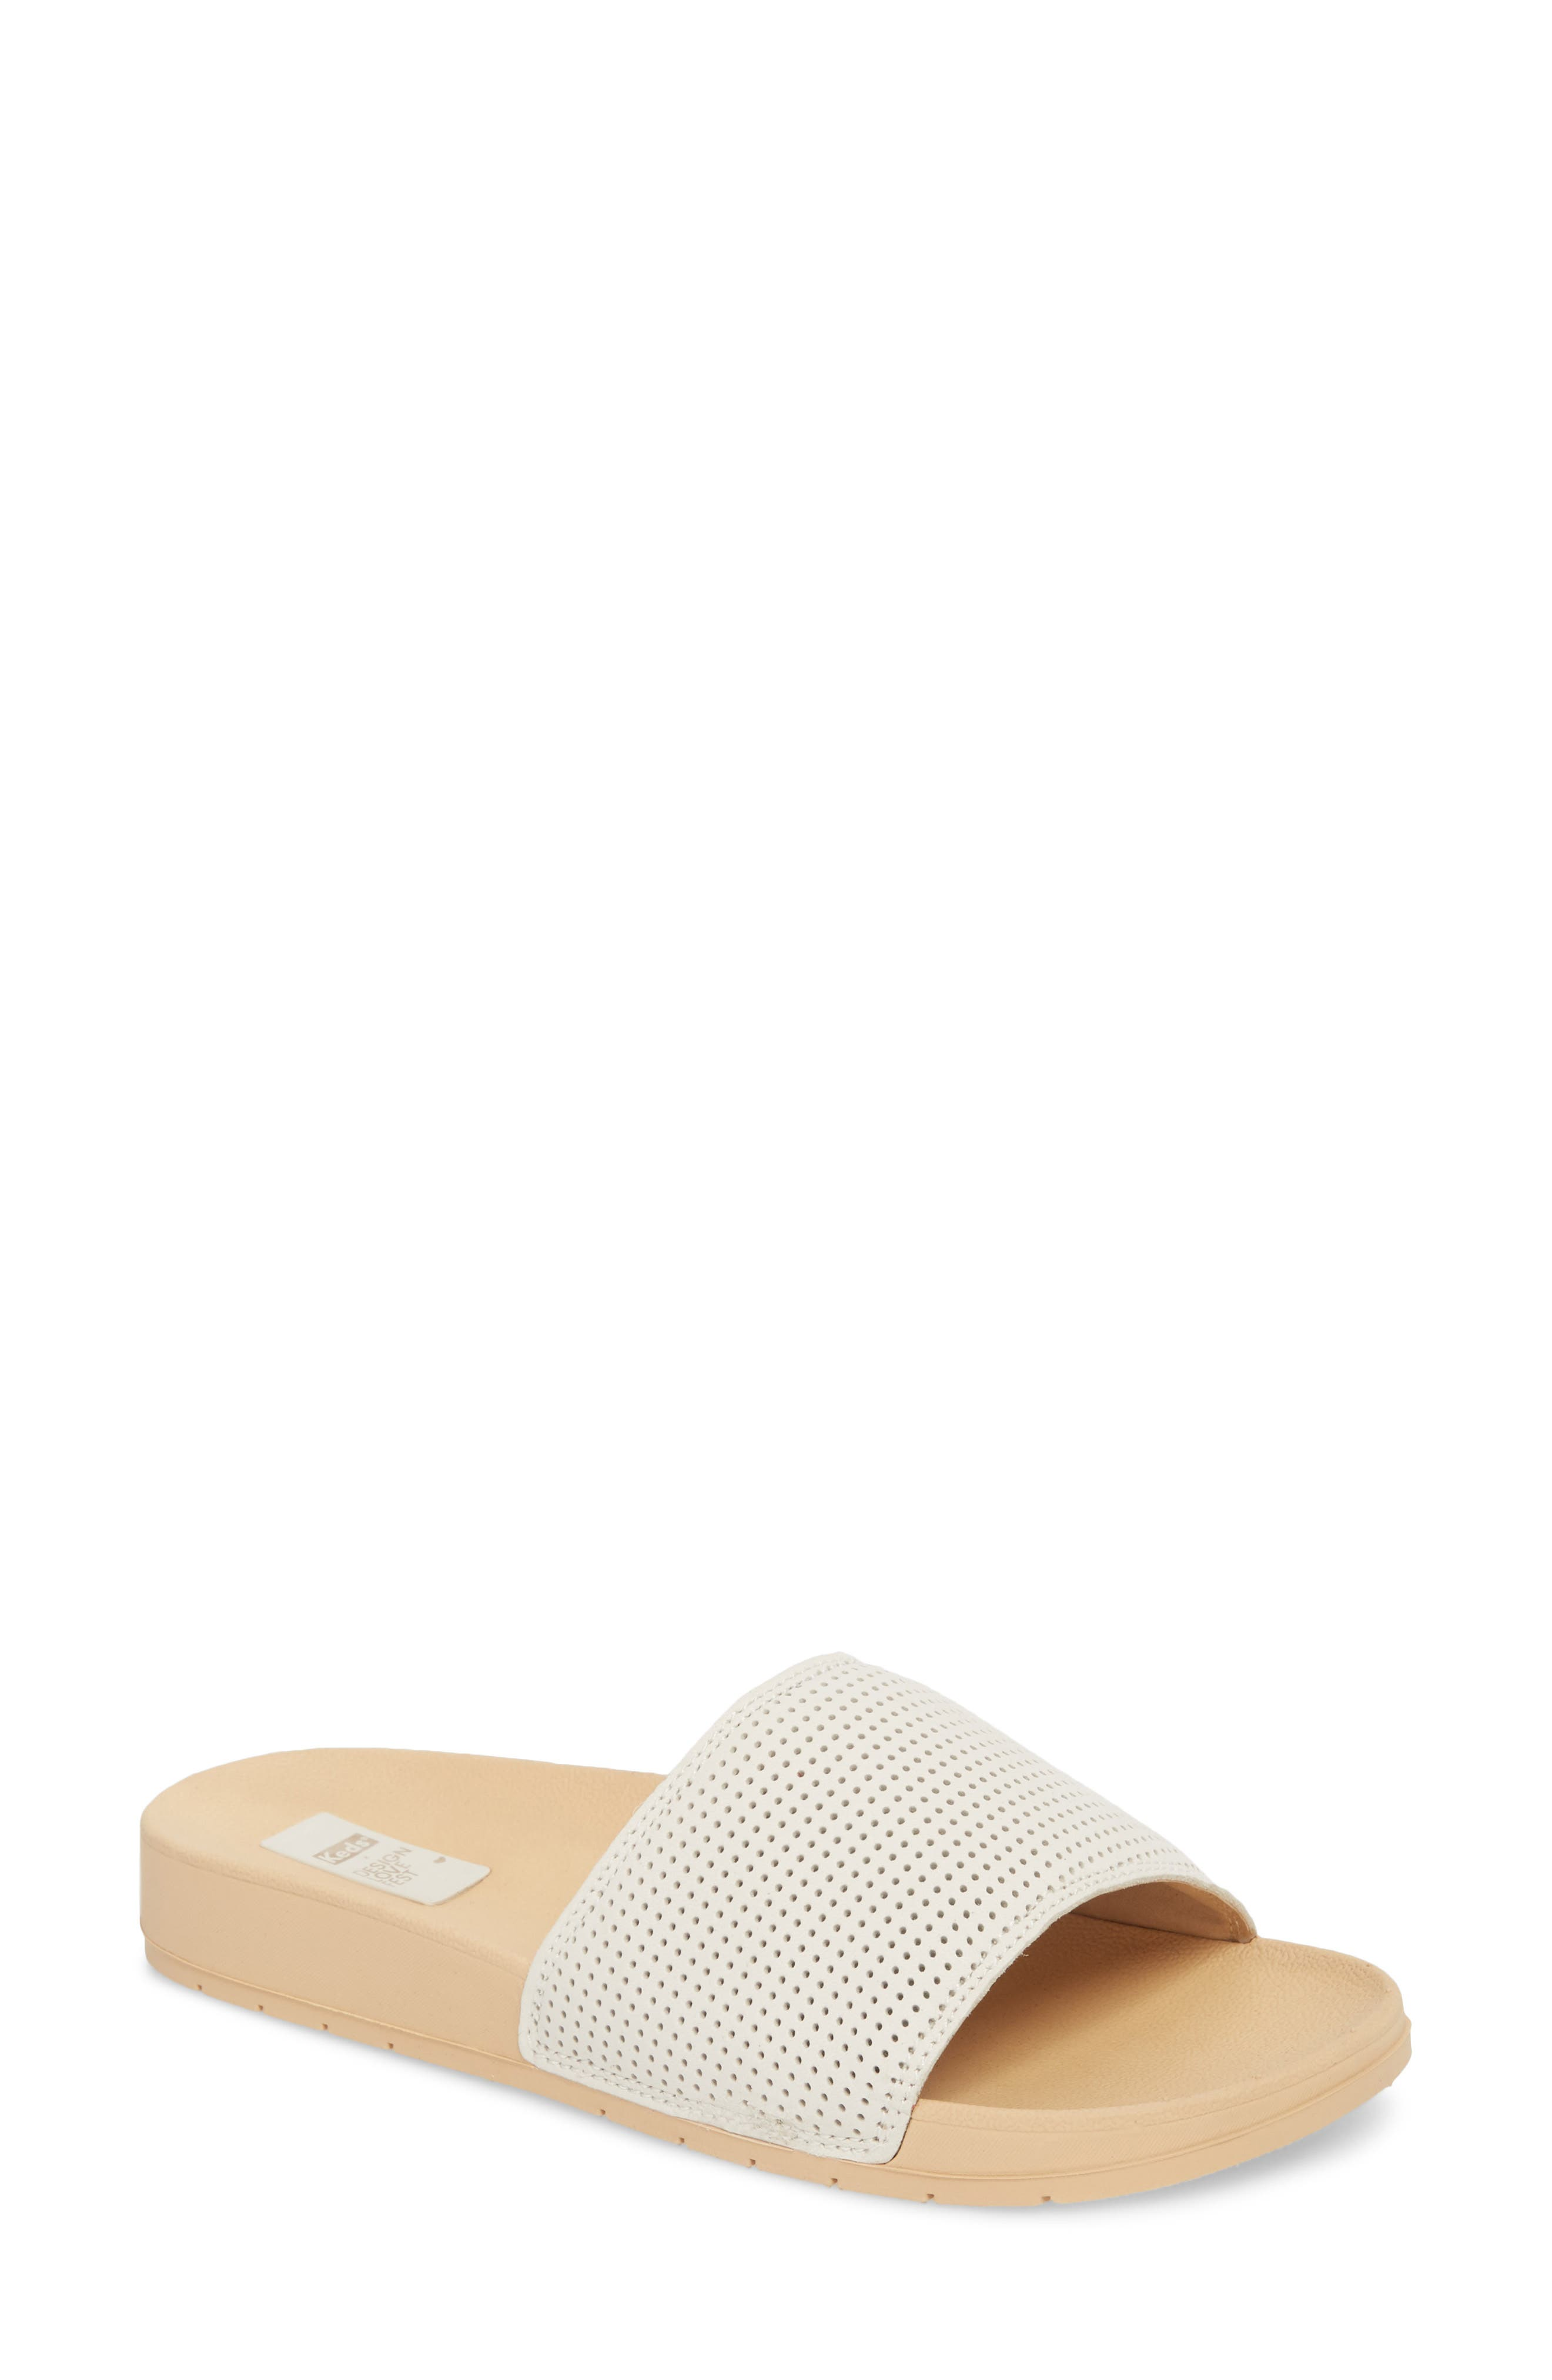 x Designlovefest Bliss Slide Sandal,                             Main thumbnail 1, color,                             CREAM/ TAN